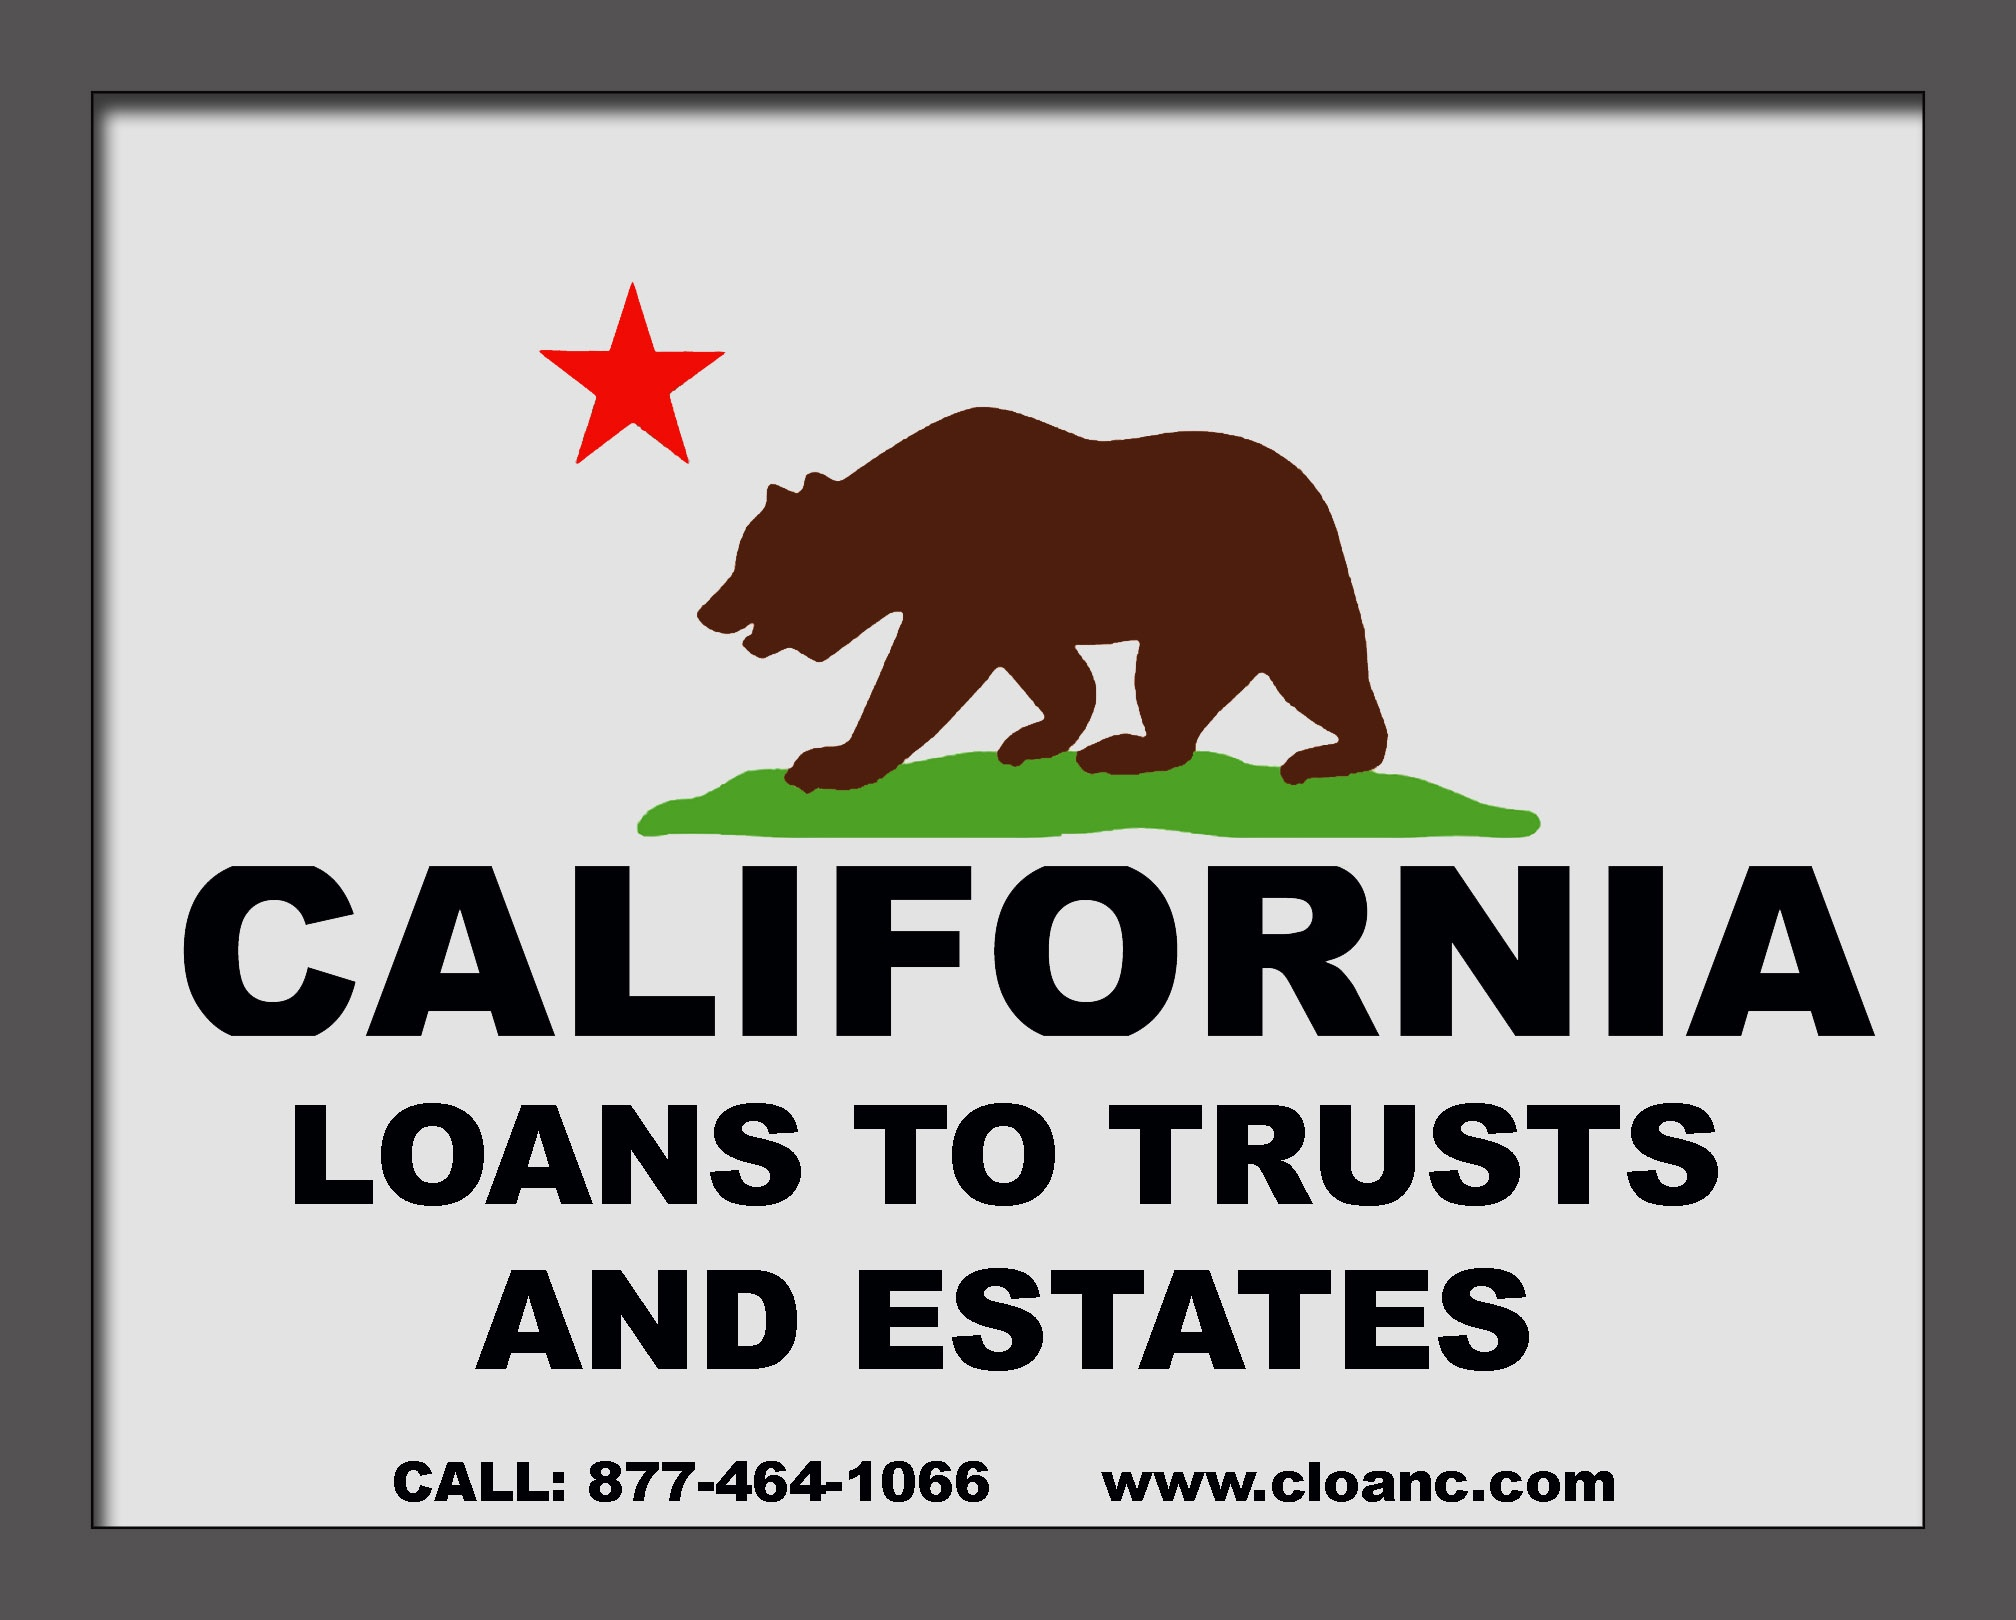 California Loans to Trusts, Estates and On Homes Being Inherited From A Parent.